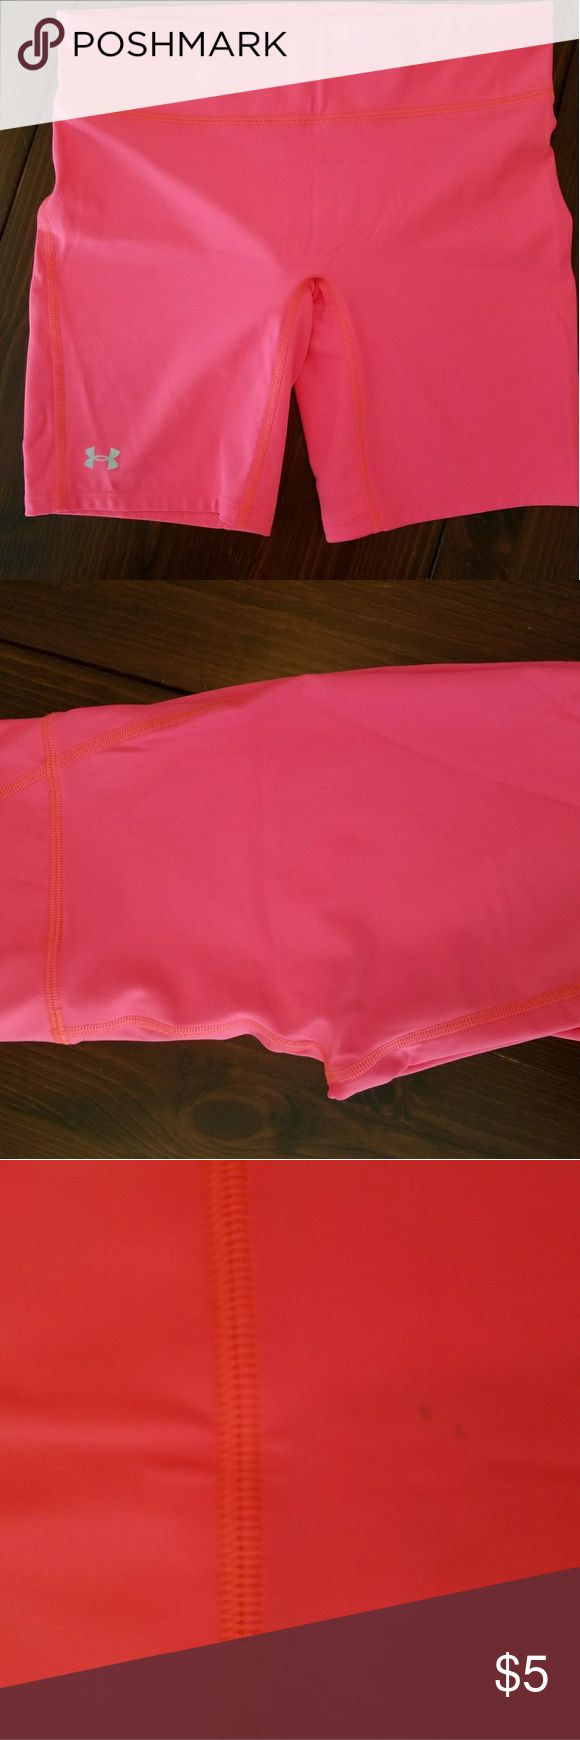 Under Armour pink compression shorts, fits like S Under Armour pink compression shorts, fits like S Shorts